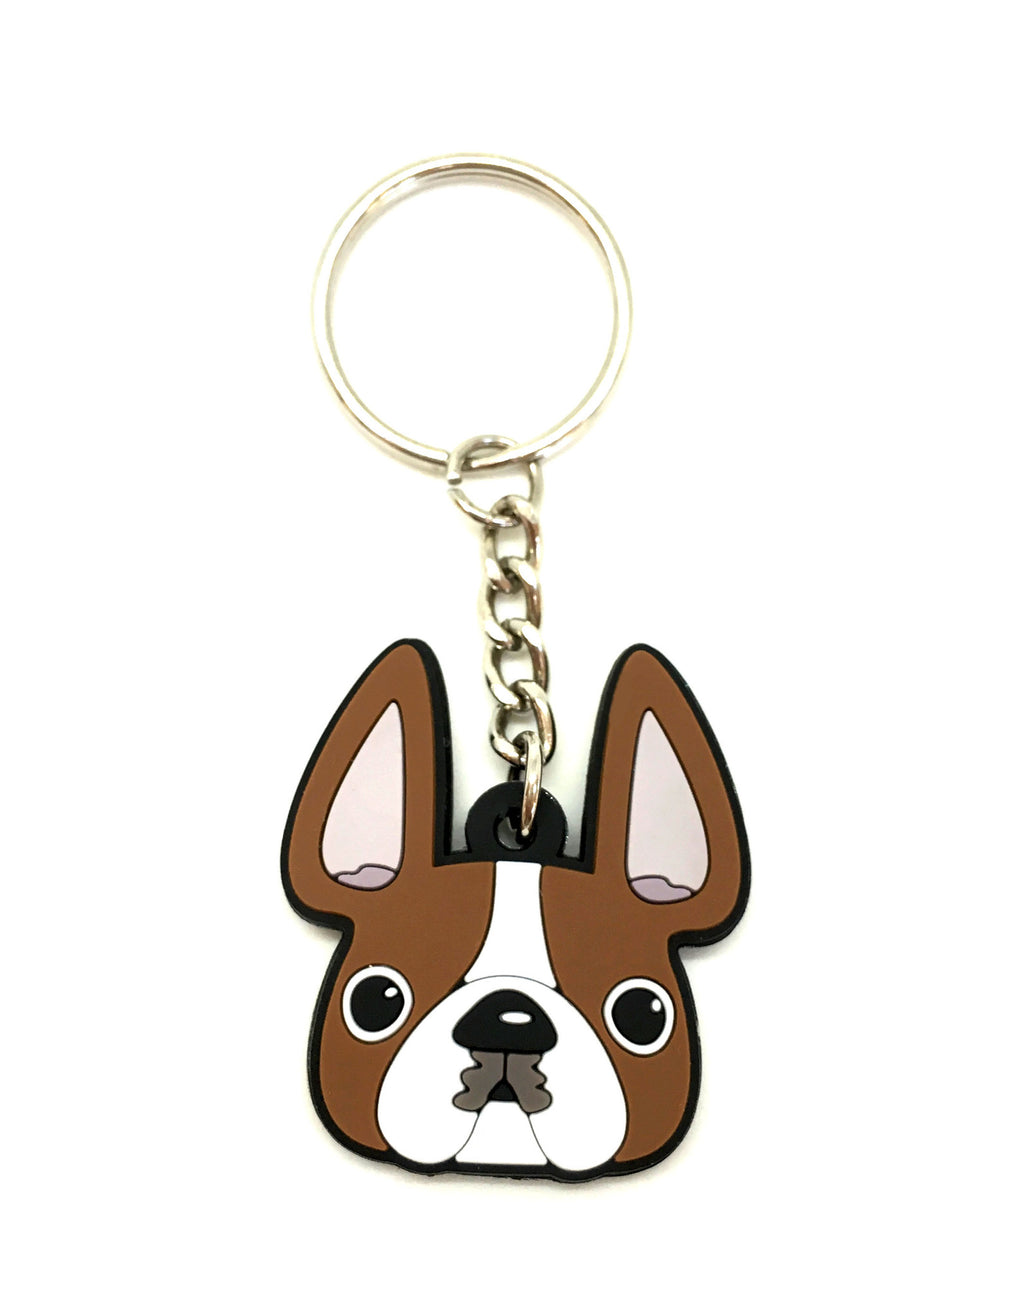 Frenchie Face Mini Keychain / Red Pied - French Bulldog Love - 1